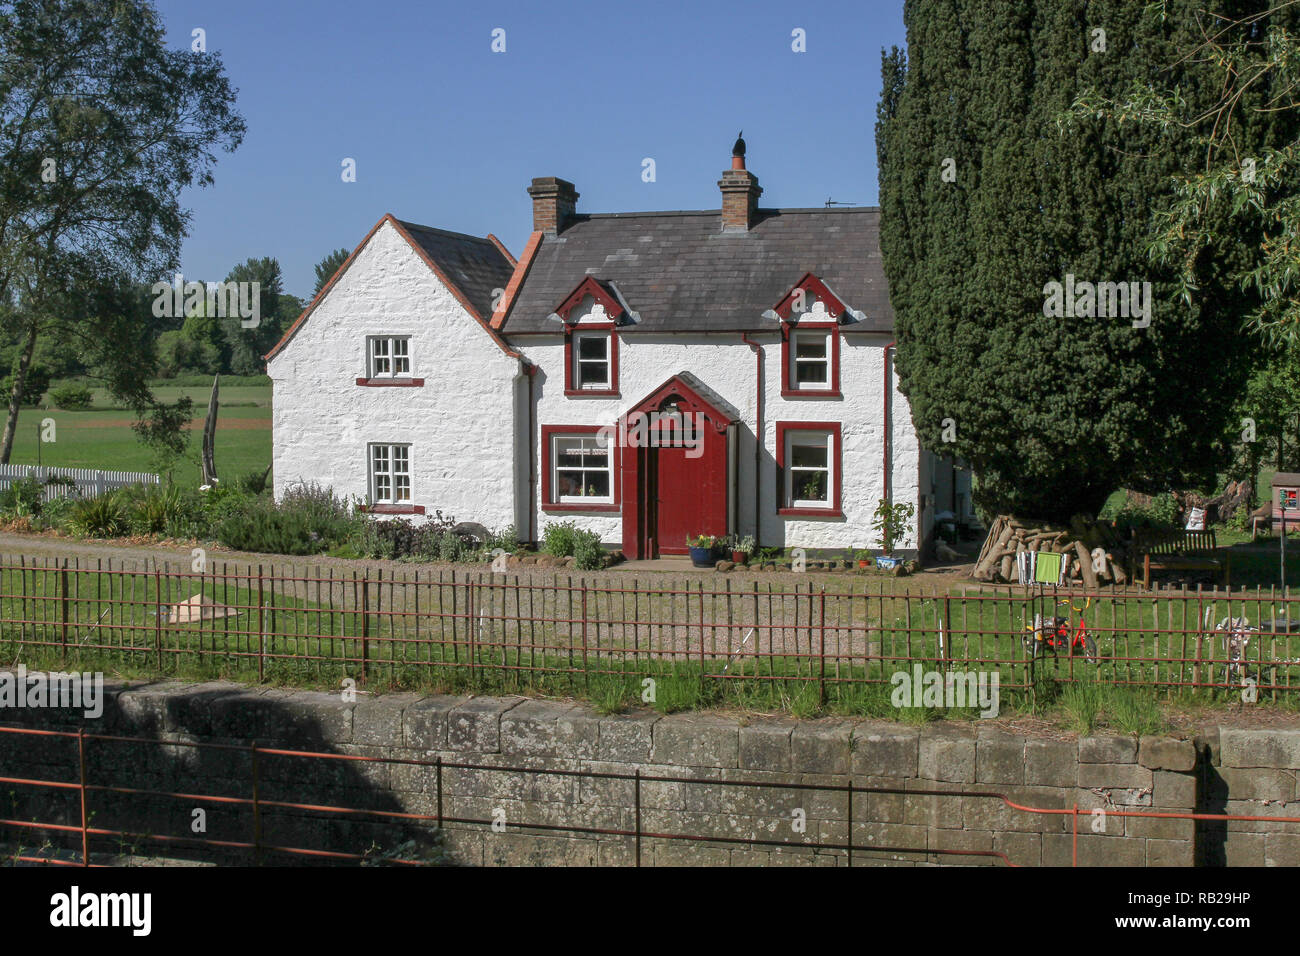 The canal lock and restored lock keeper's house at Moneypenny's Lock, Newry Canal, Northern Ireland. - Stock Image